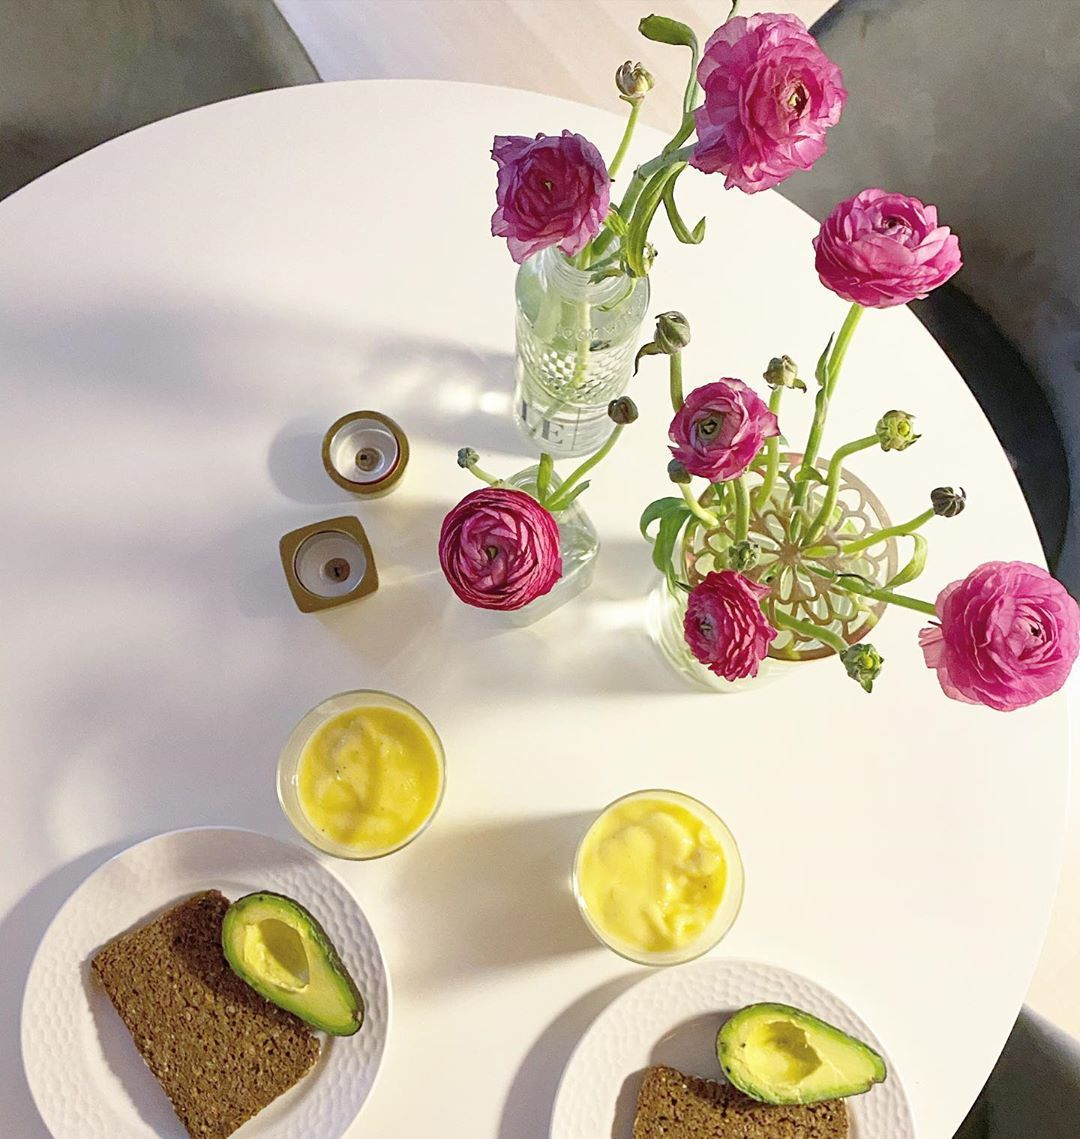 Breakfast is better with Ranunculus.